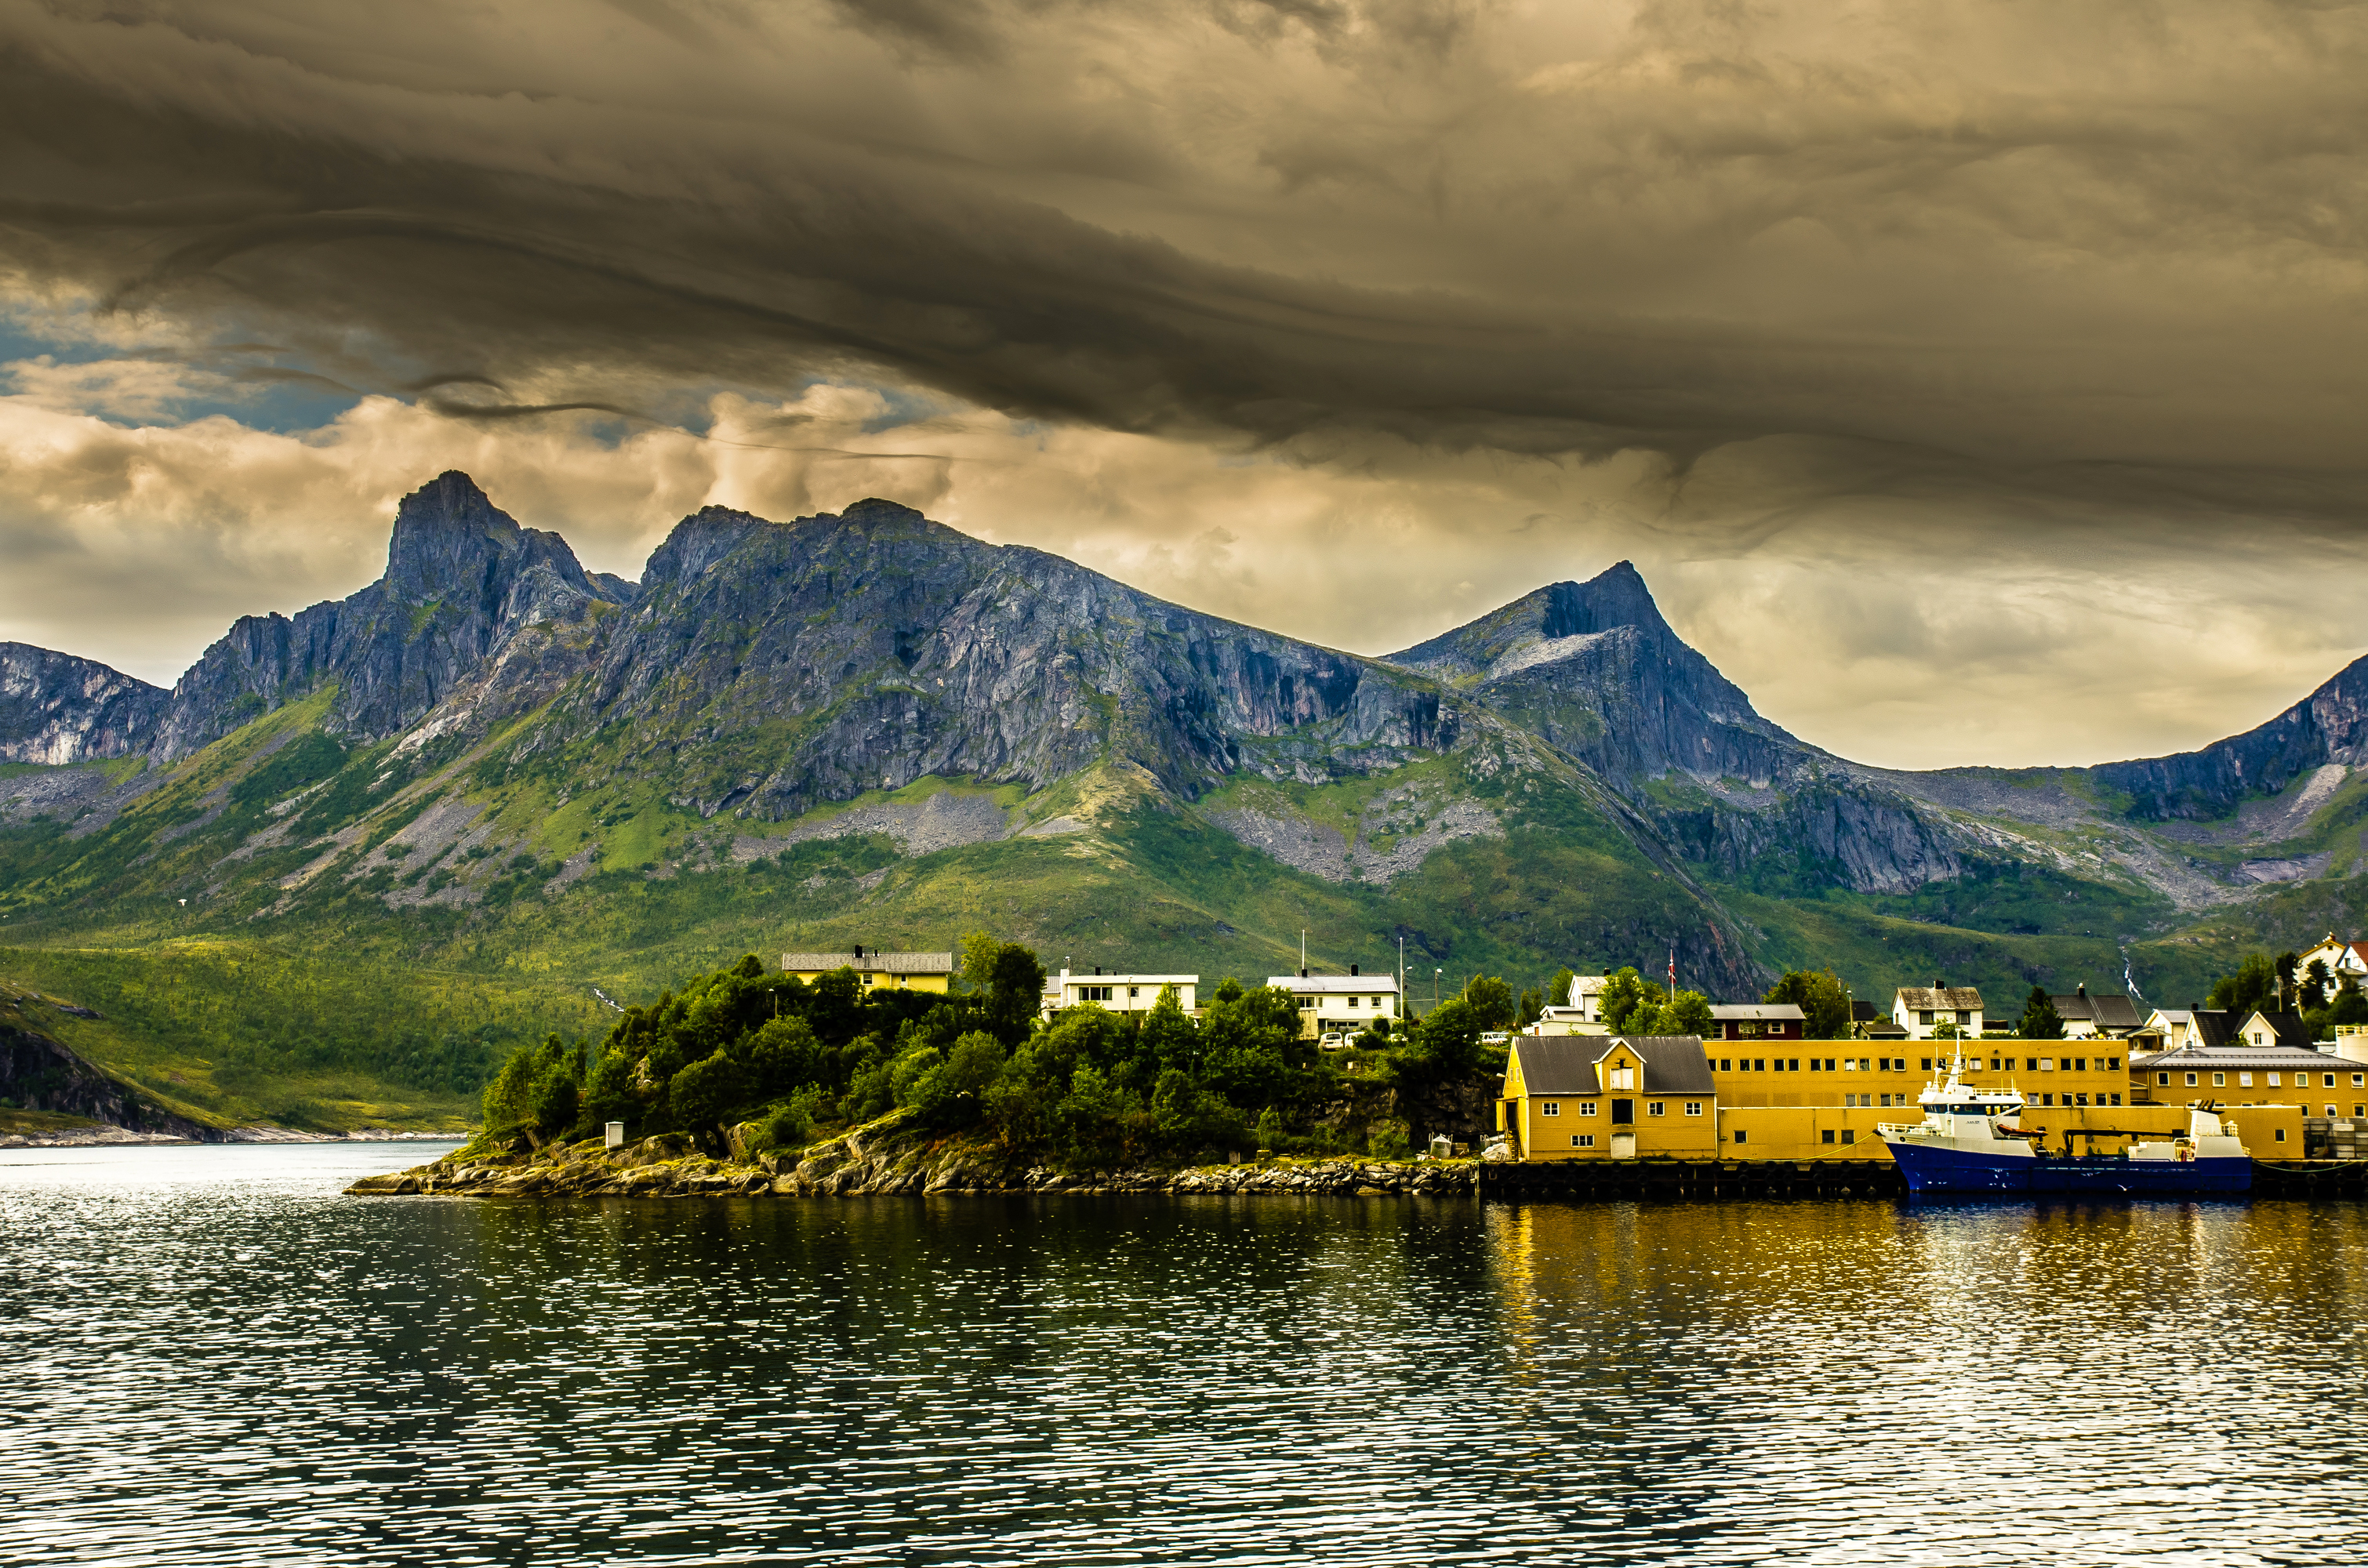 87441 download wallpaper Nature, Norway, Bay, Ford, Pier, Wharf, Hdr, Mountains screensavers and pictures for free